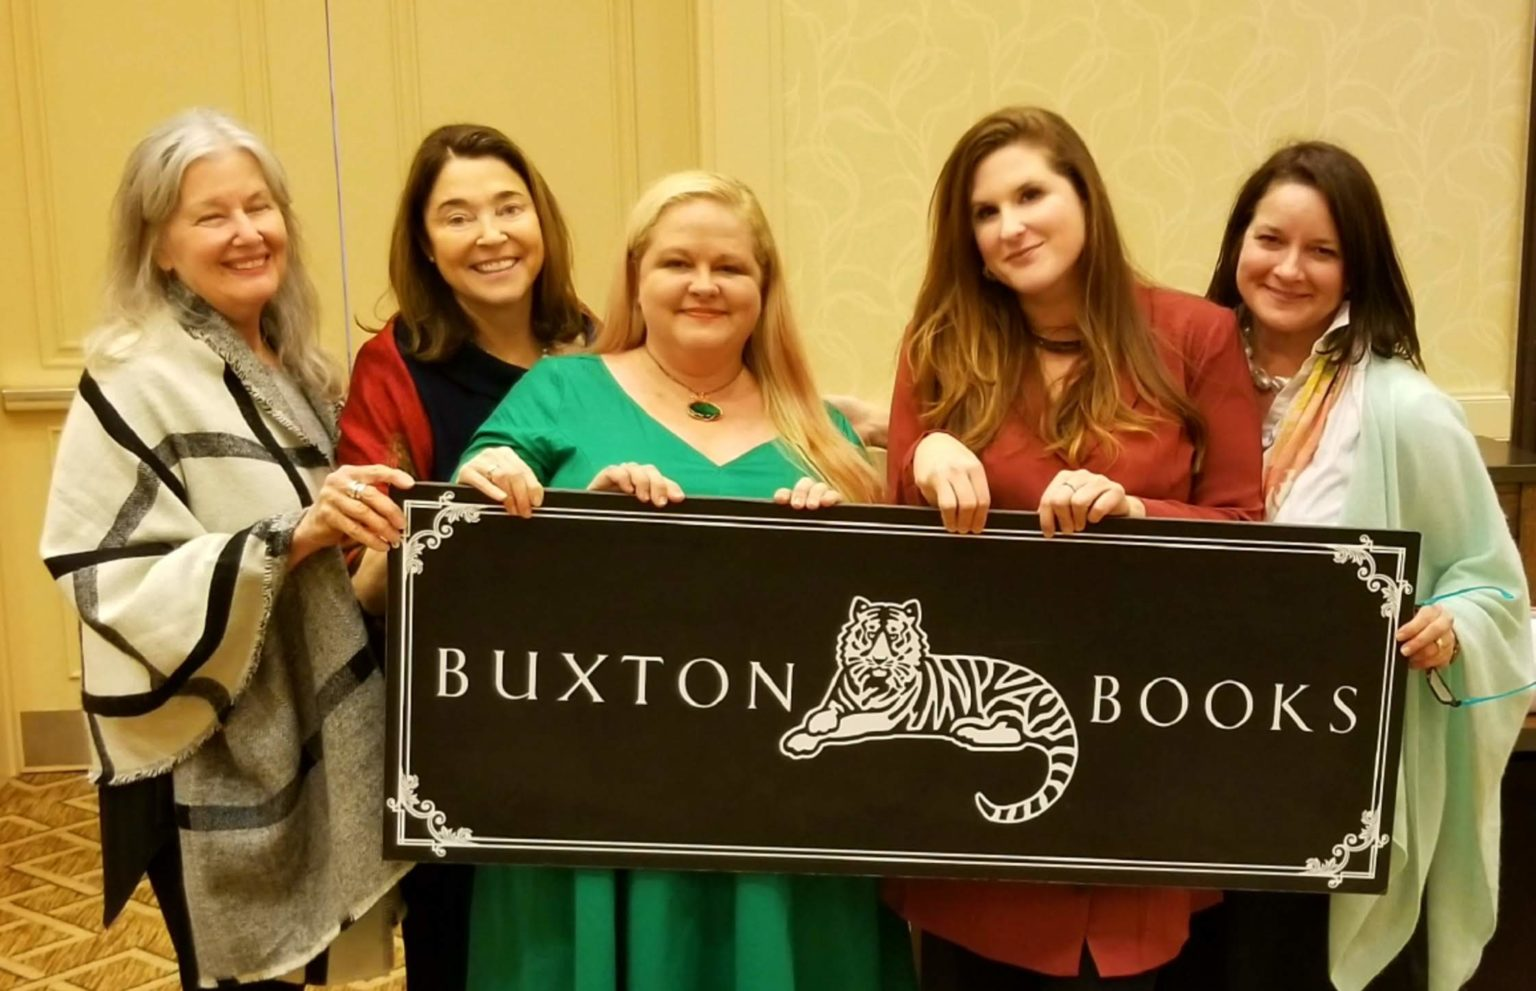 Wild Dunes Author Series hosted by Mary Alice Monroe, featuring Elizabeth Berg, Kate Quinn, and Signe Pike